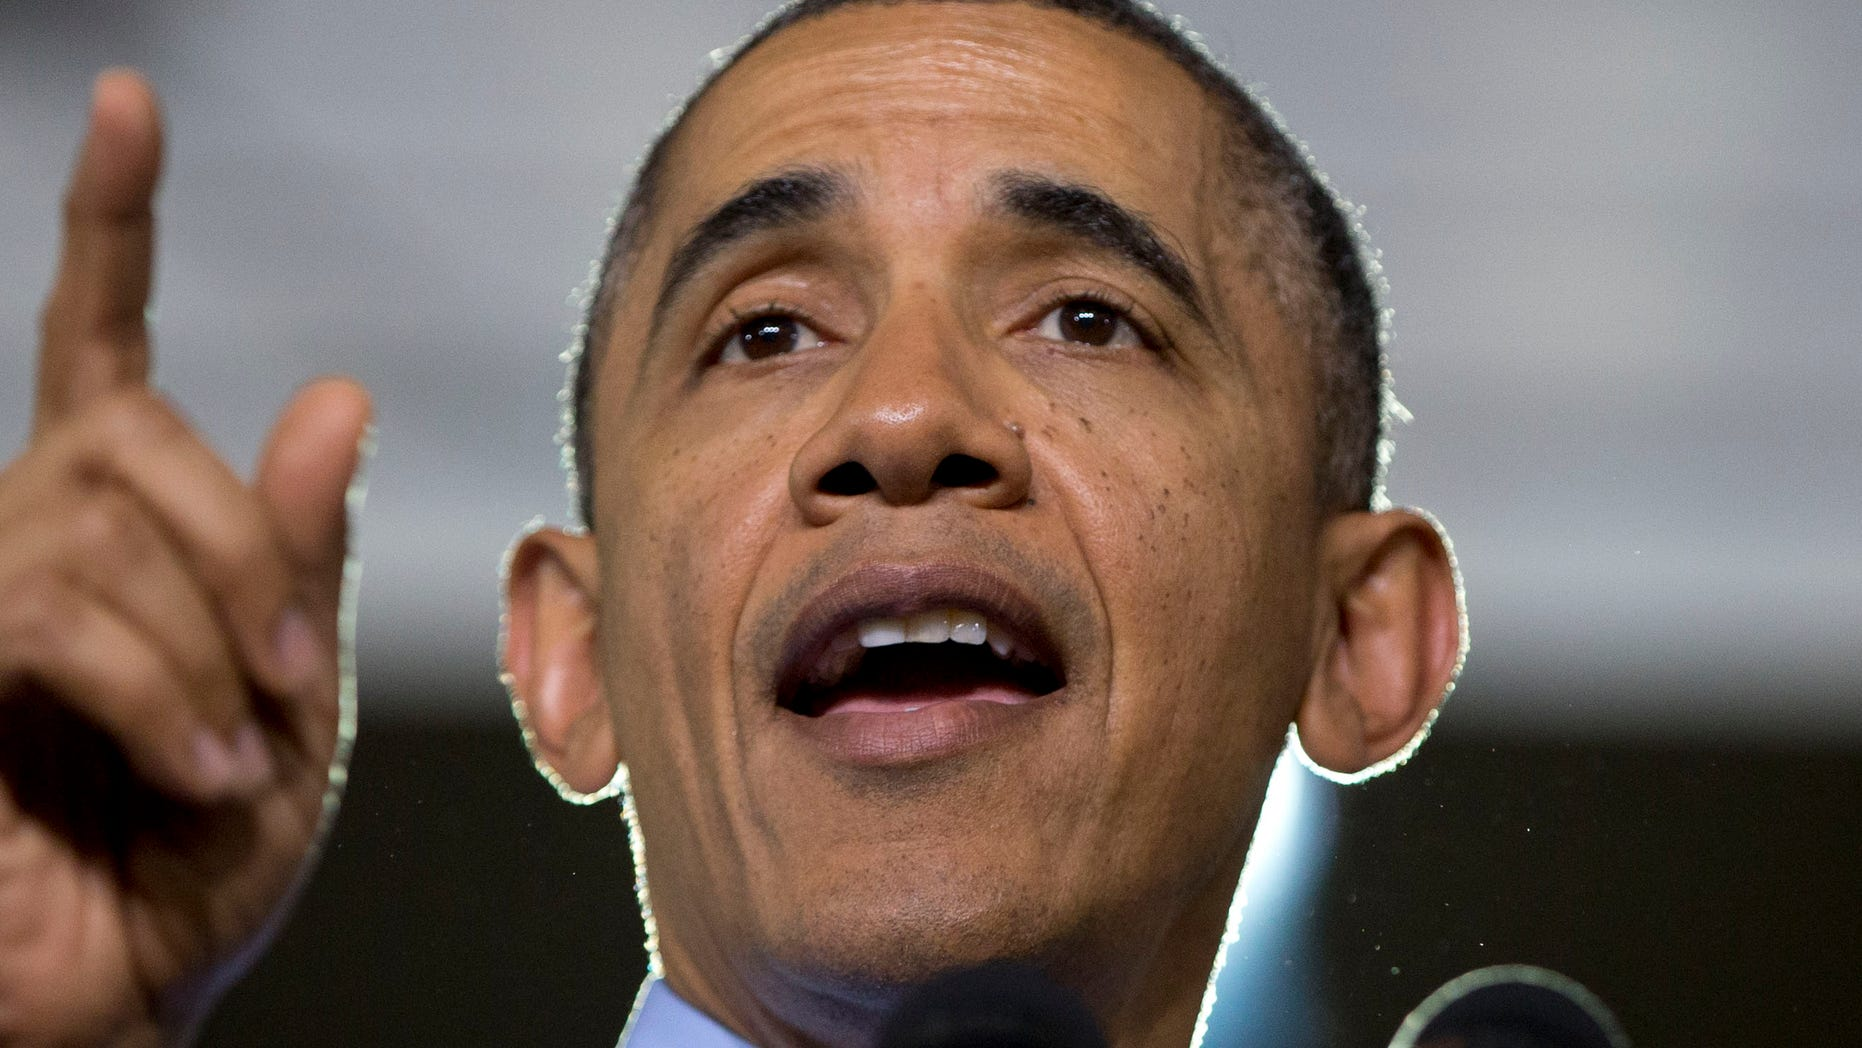 Aug. 16, 2014: President Obama speaks at Community College of Allegheny County West Hills Center.